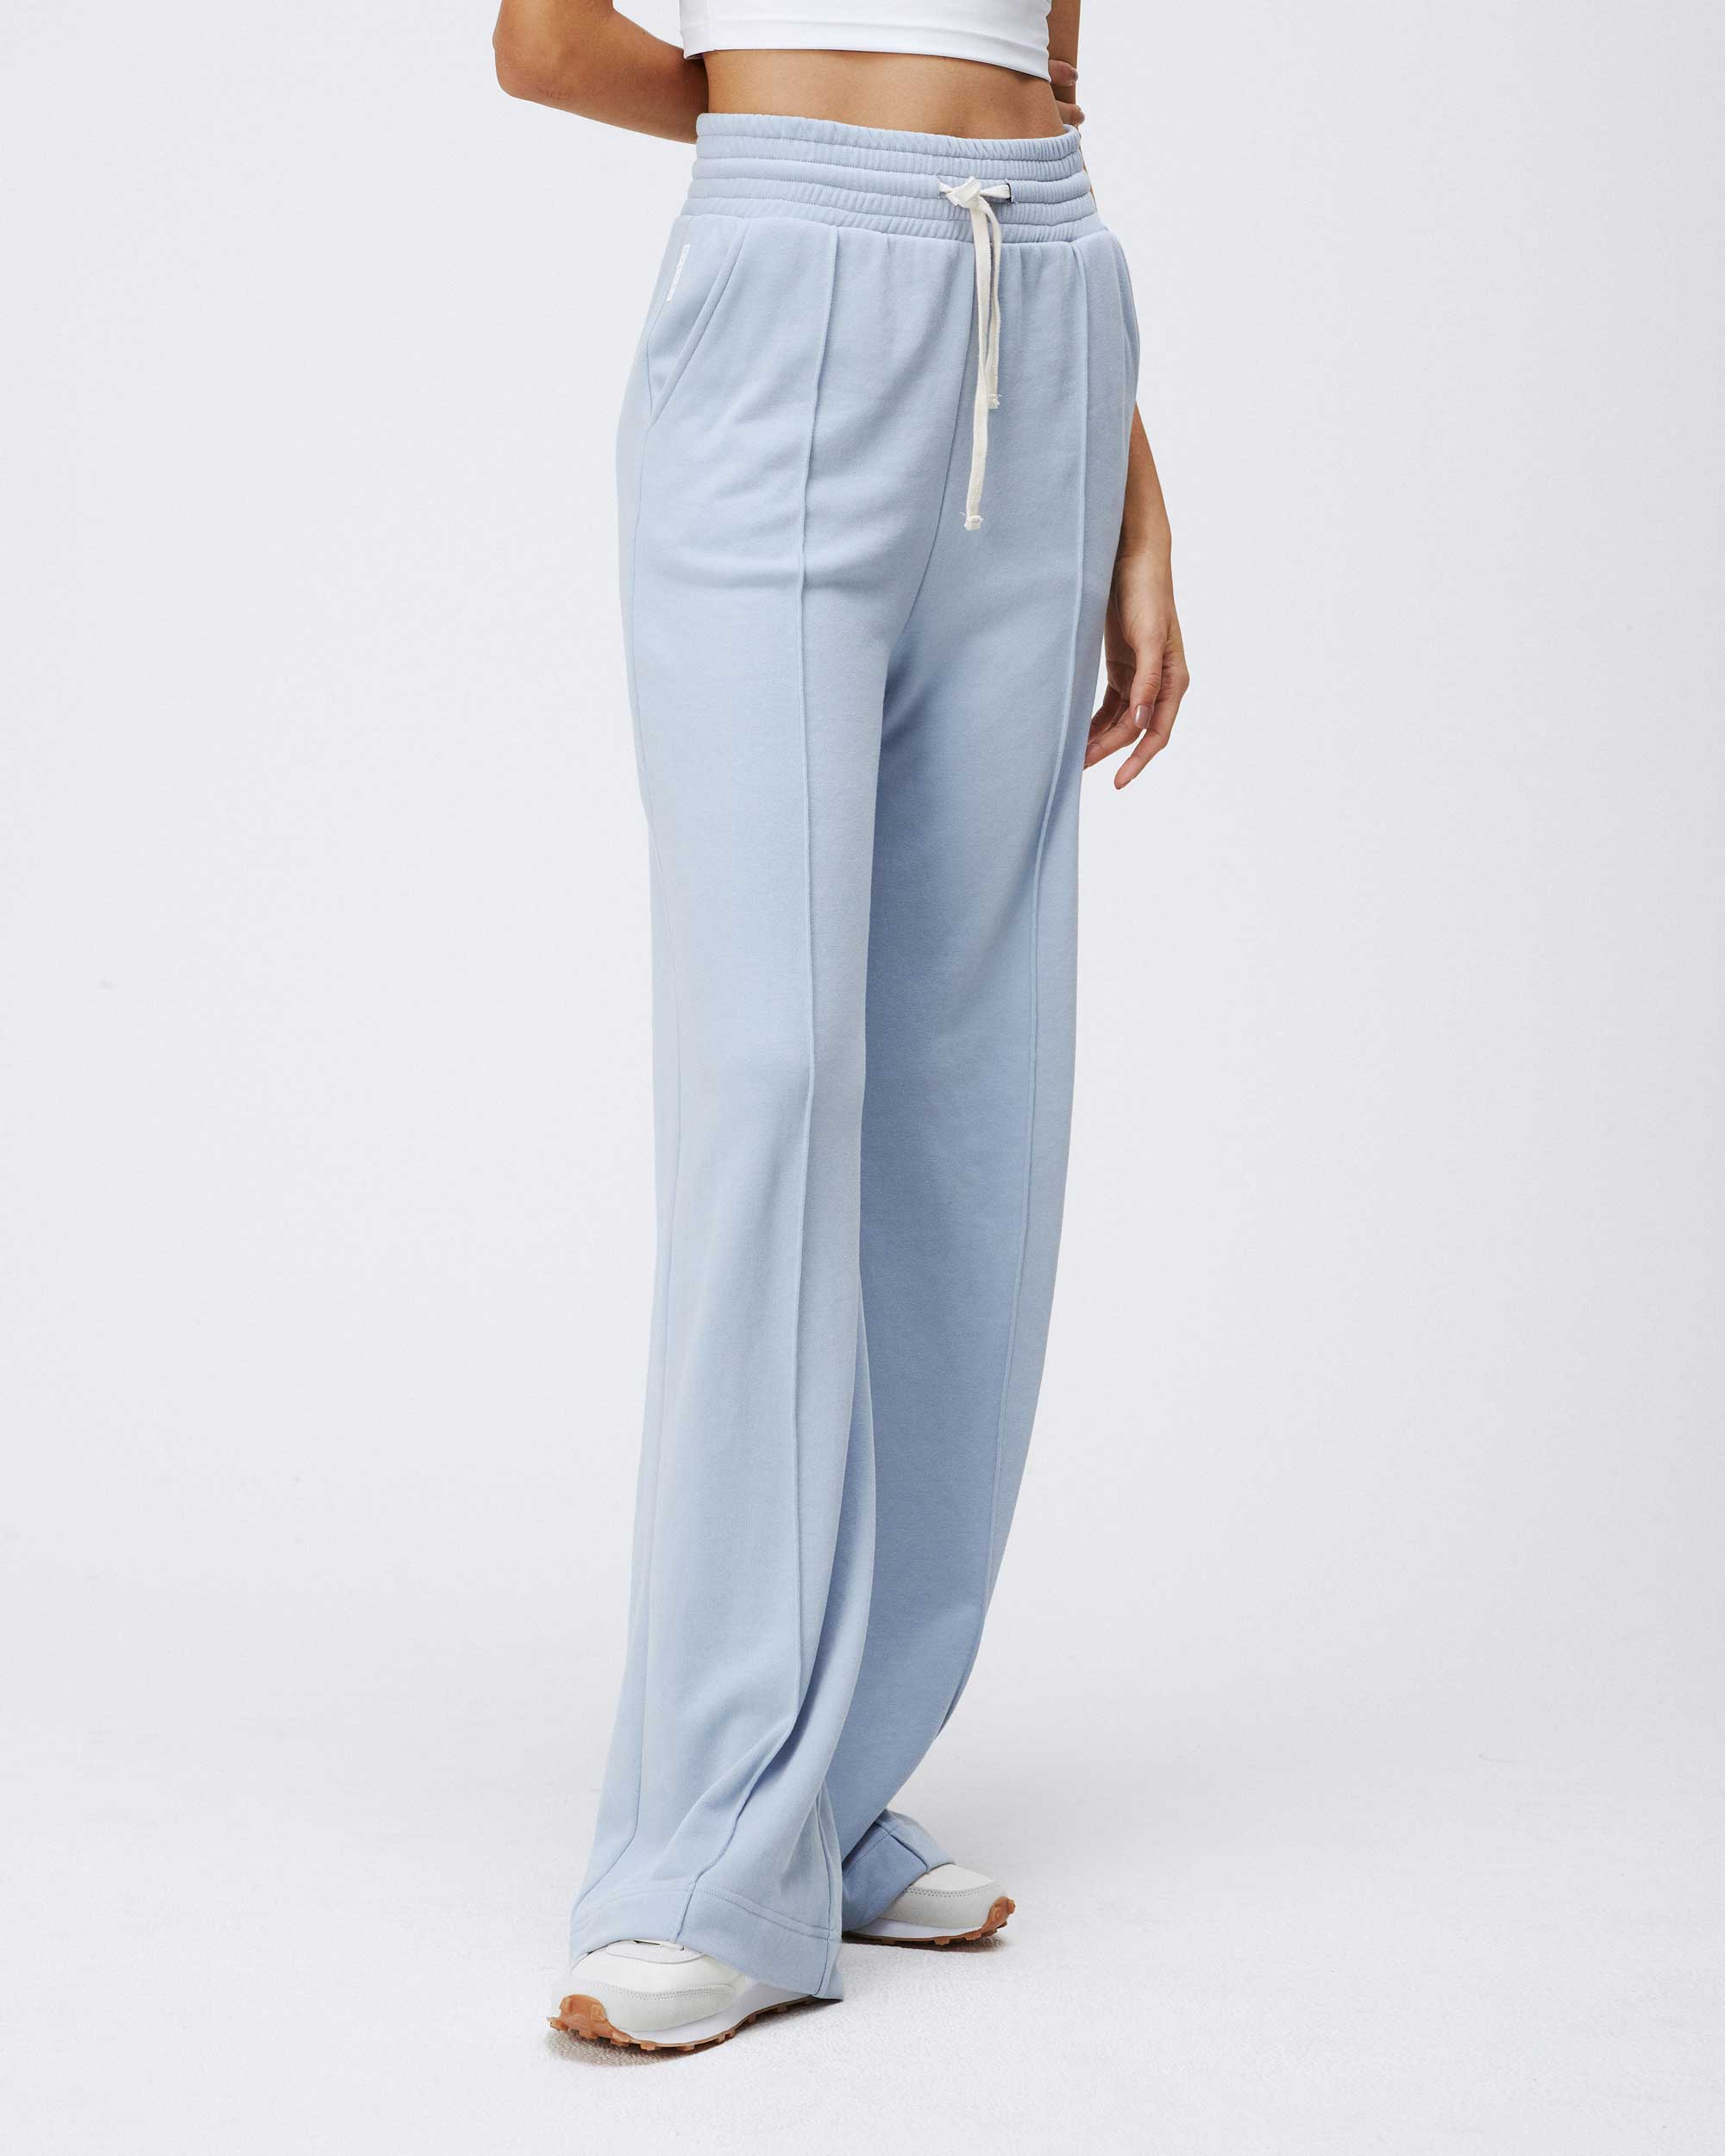 BEO PANTS CLOUDY BLUE